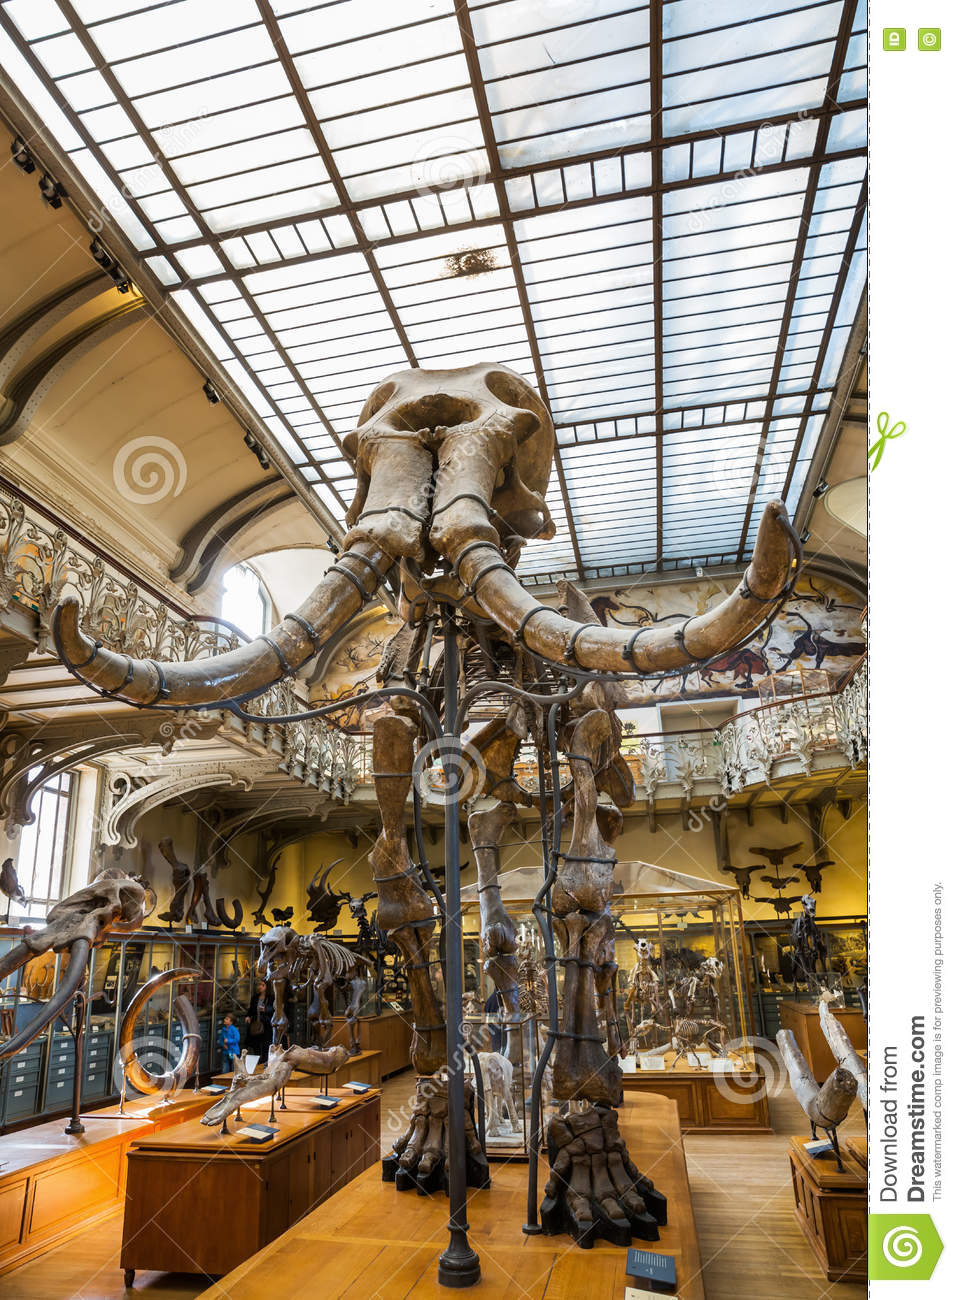 Skeletons Of Animals In The Gallery Of Palaeontology And Comparative